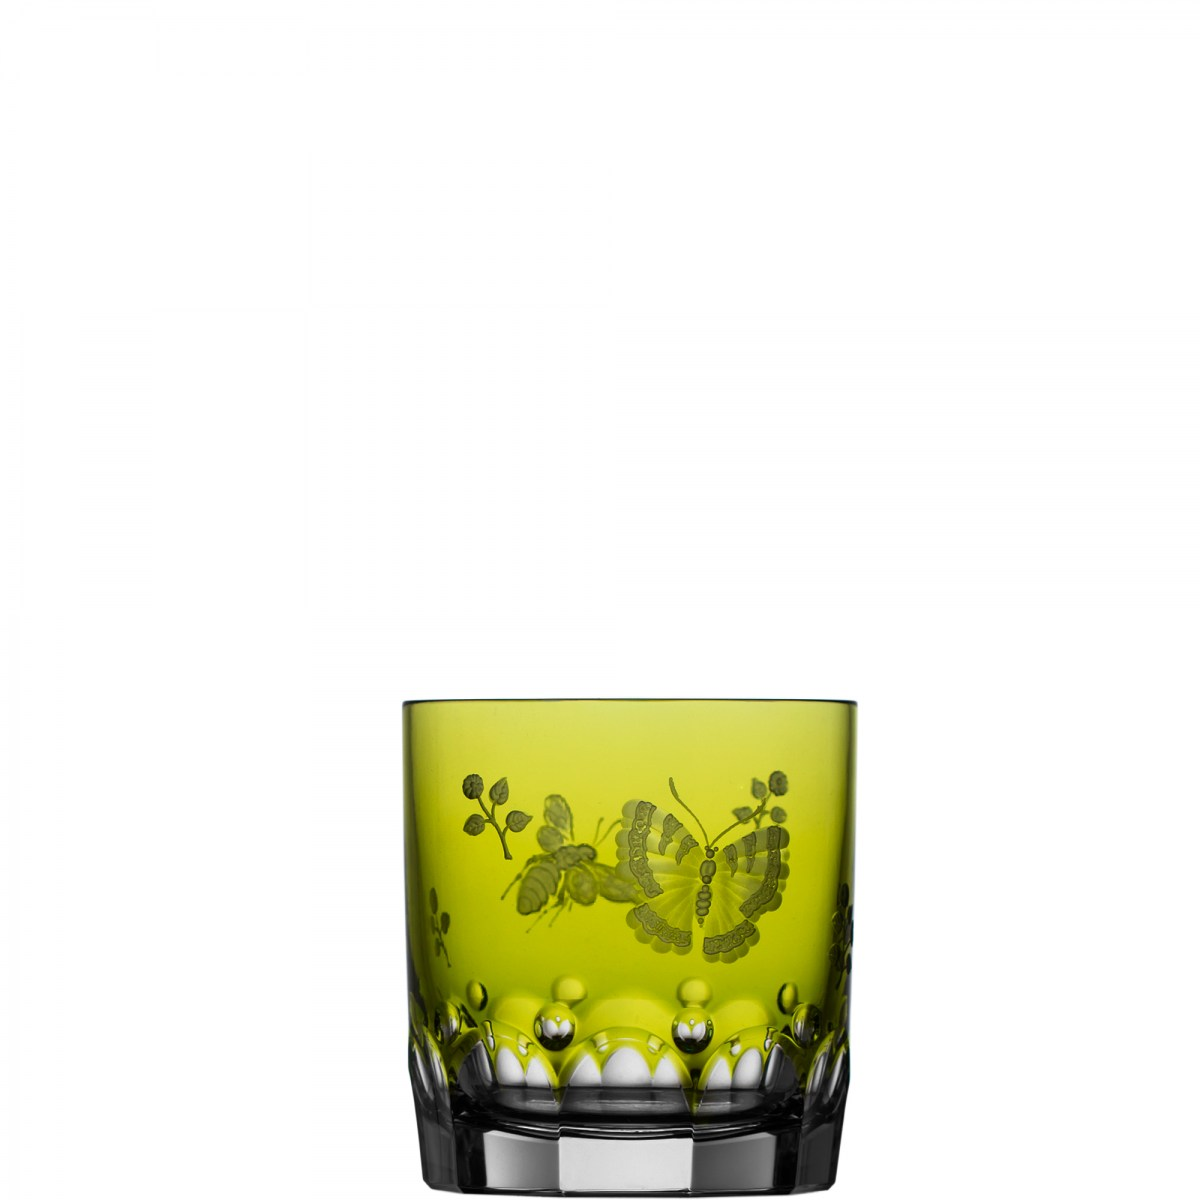 Springtime Yellow-Green DOF - $ 272 / € 238